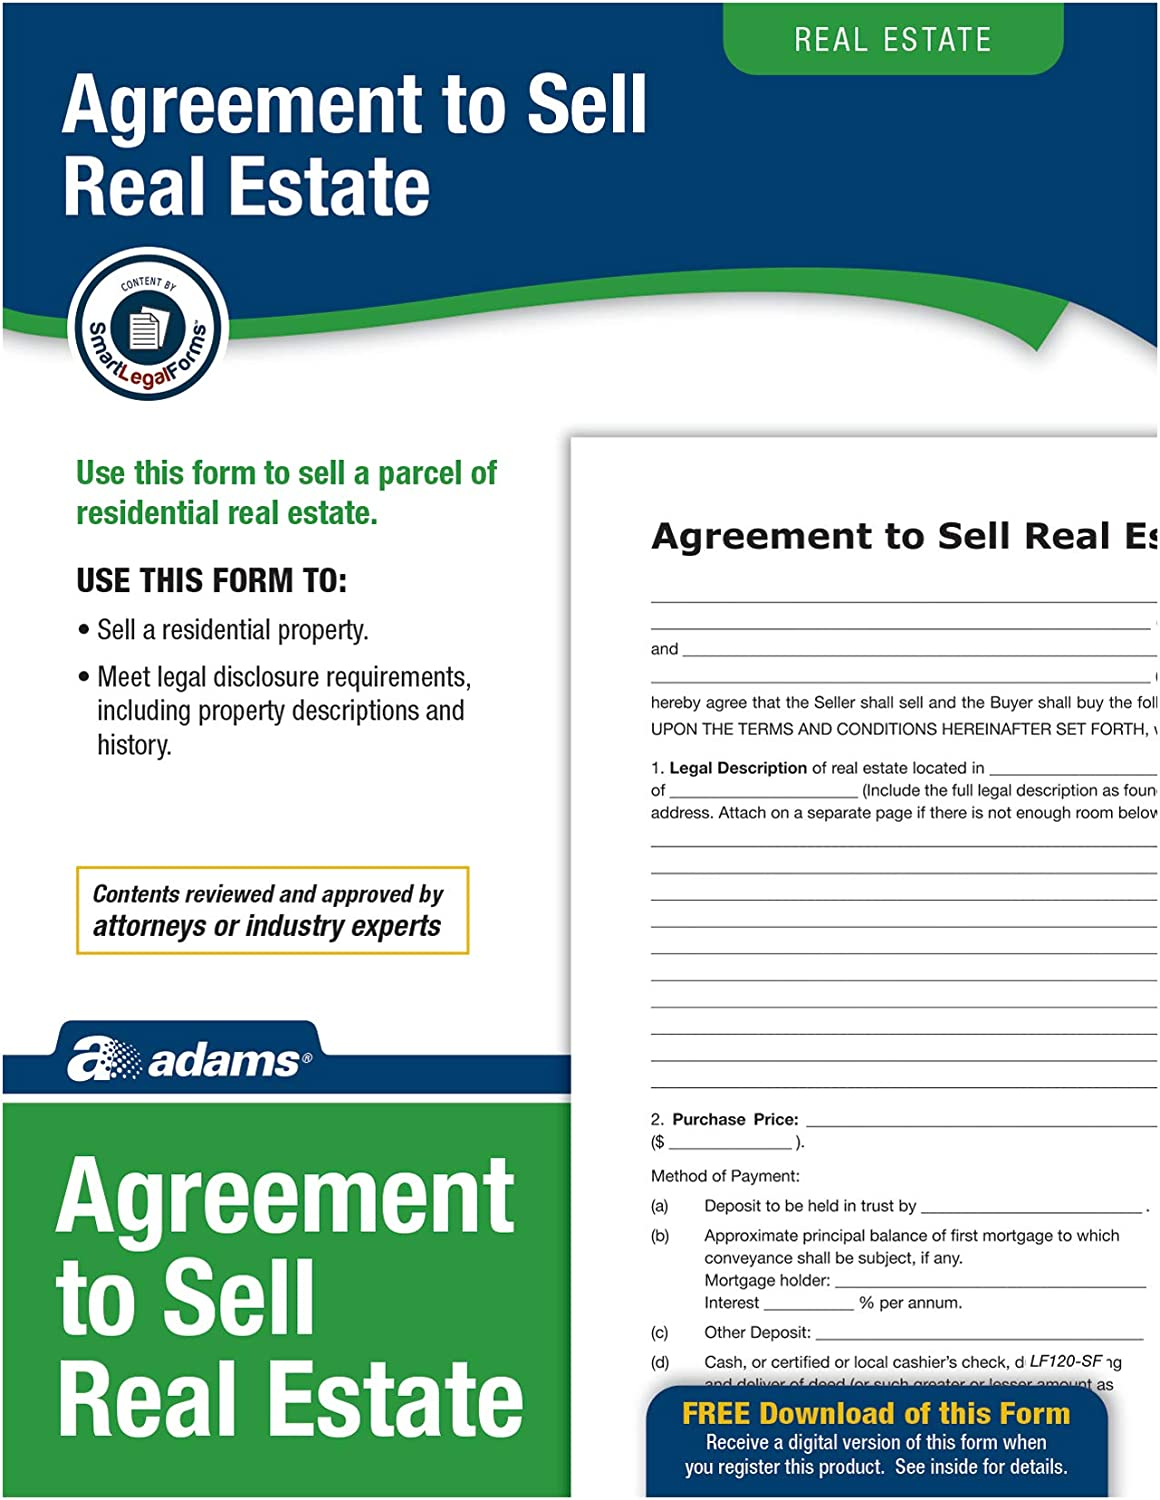 Adams Agreement To Sell Real Estate, Forms and Instructions (LF120)